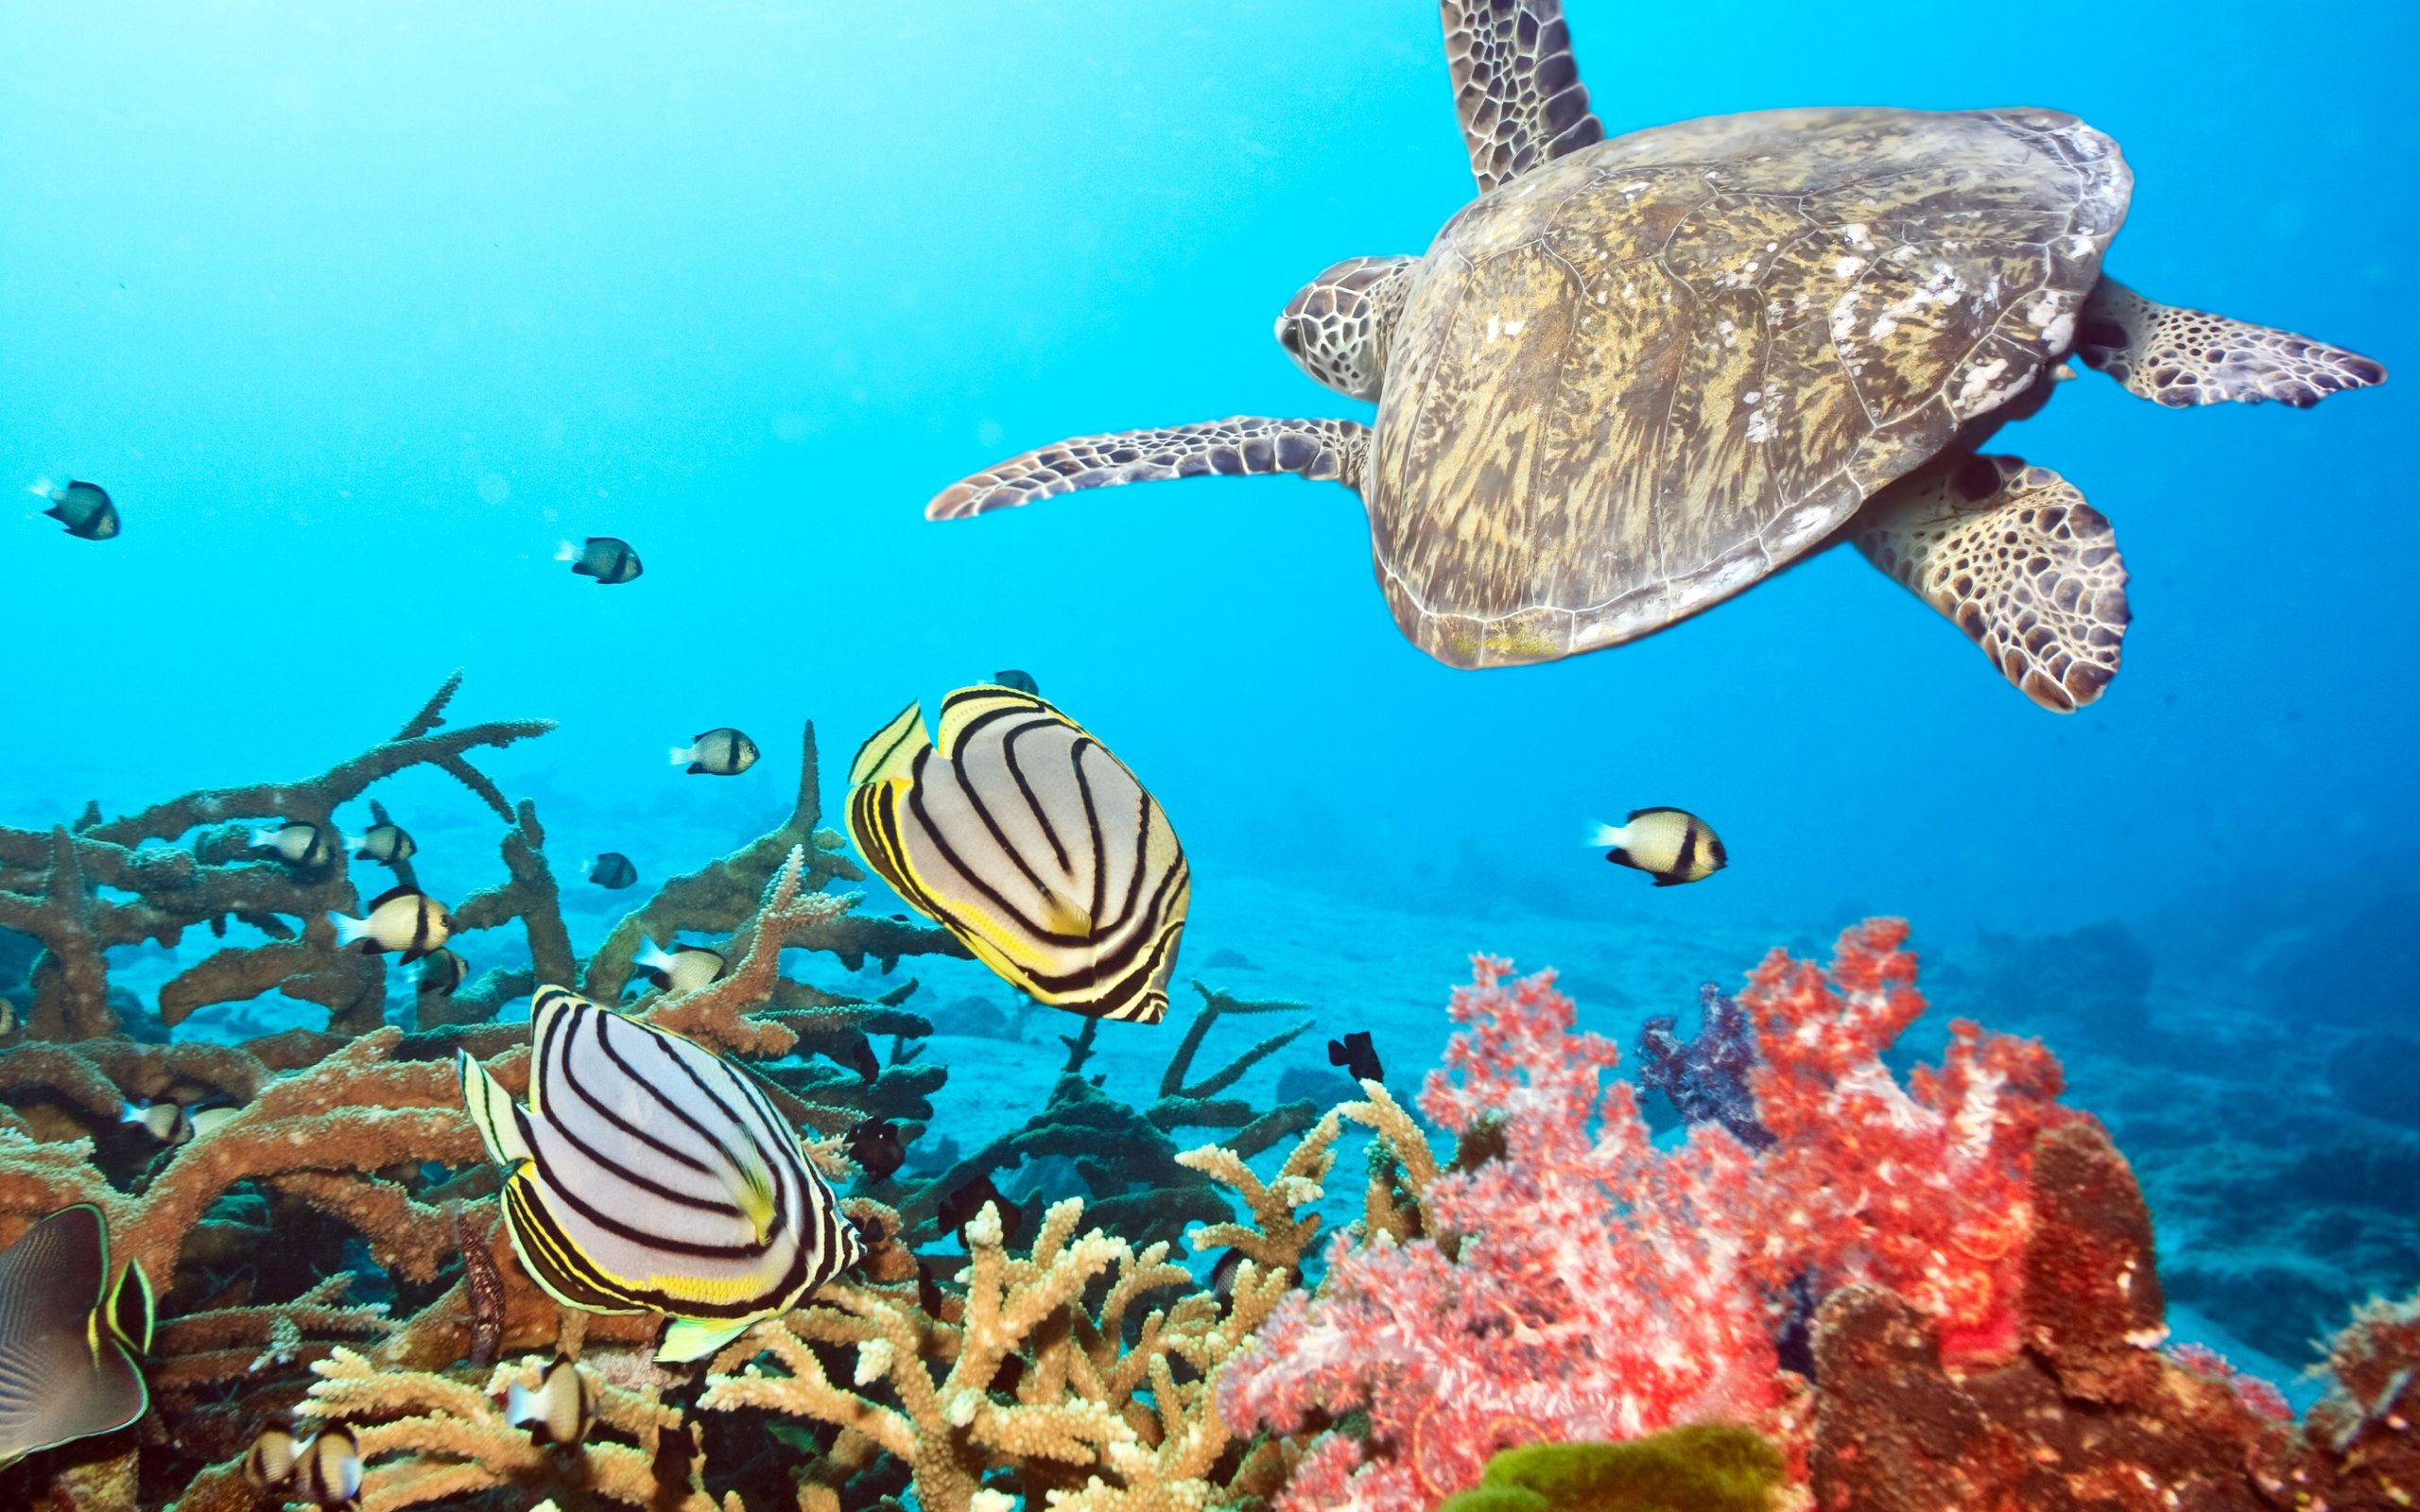 54078 download wallpaper Animals, Turtle, Sea, Ocean, Underwater World, To Swim, Swim screensavers and pictures for free